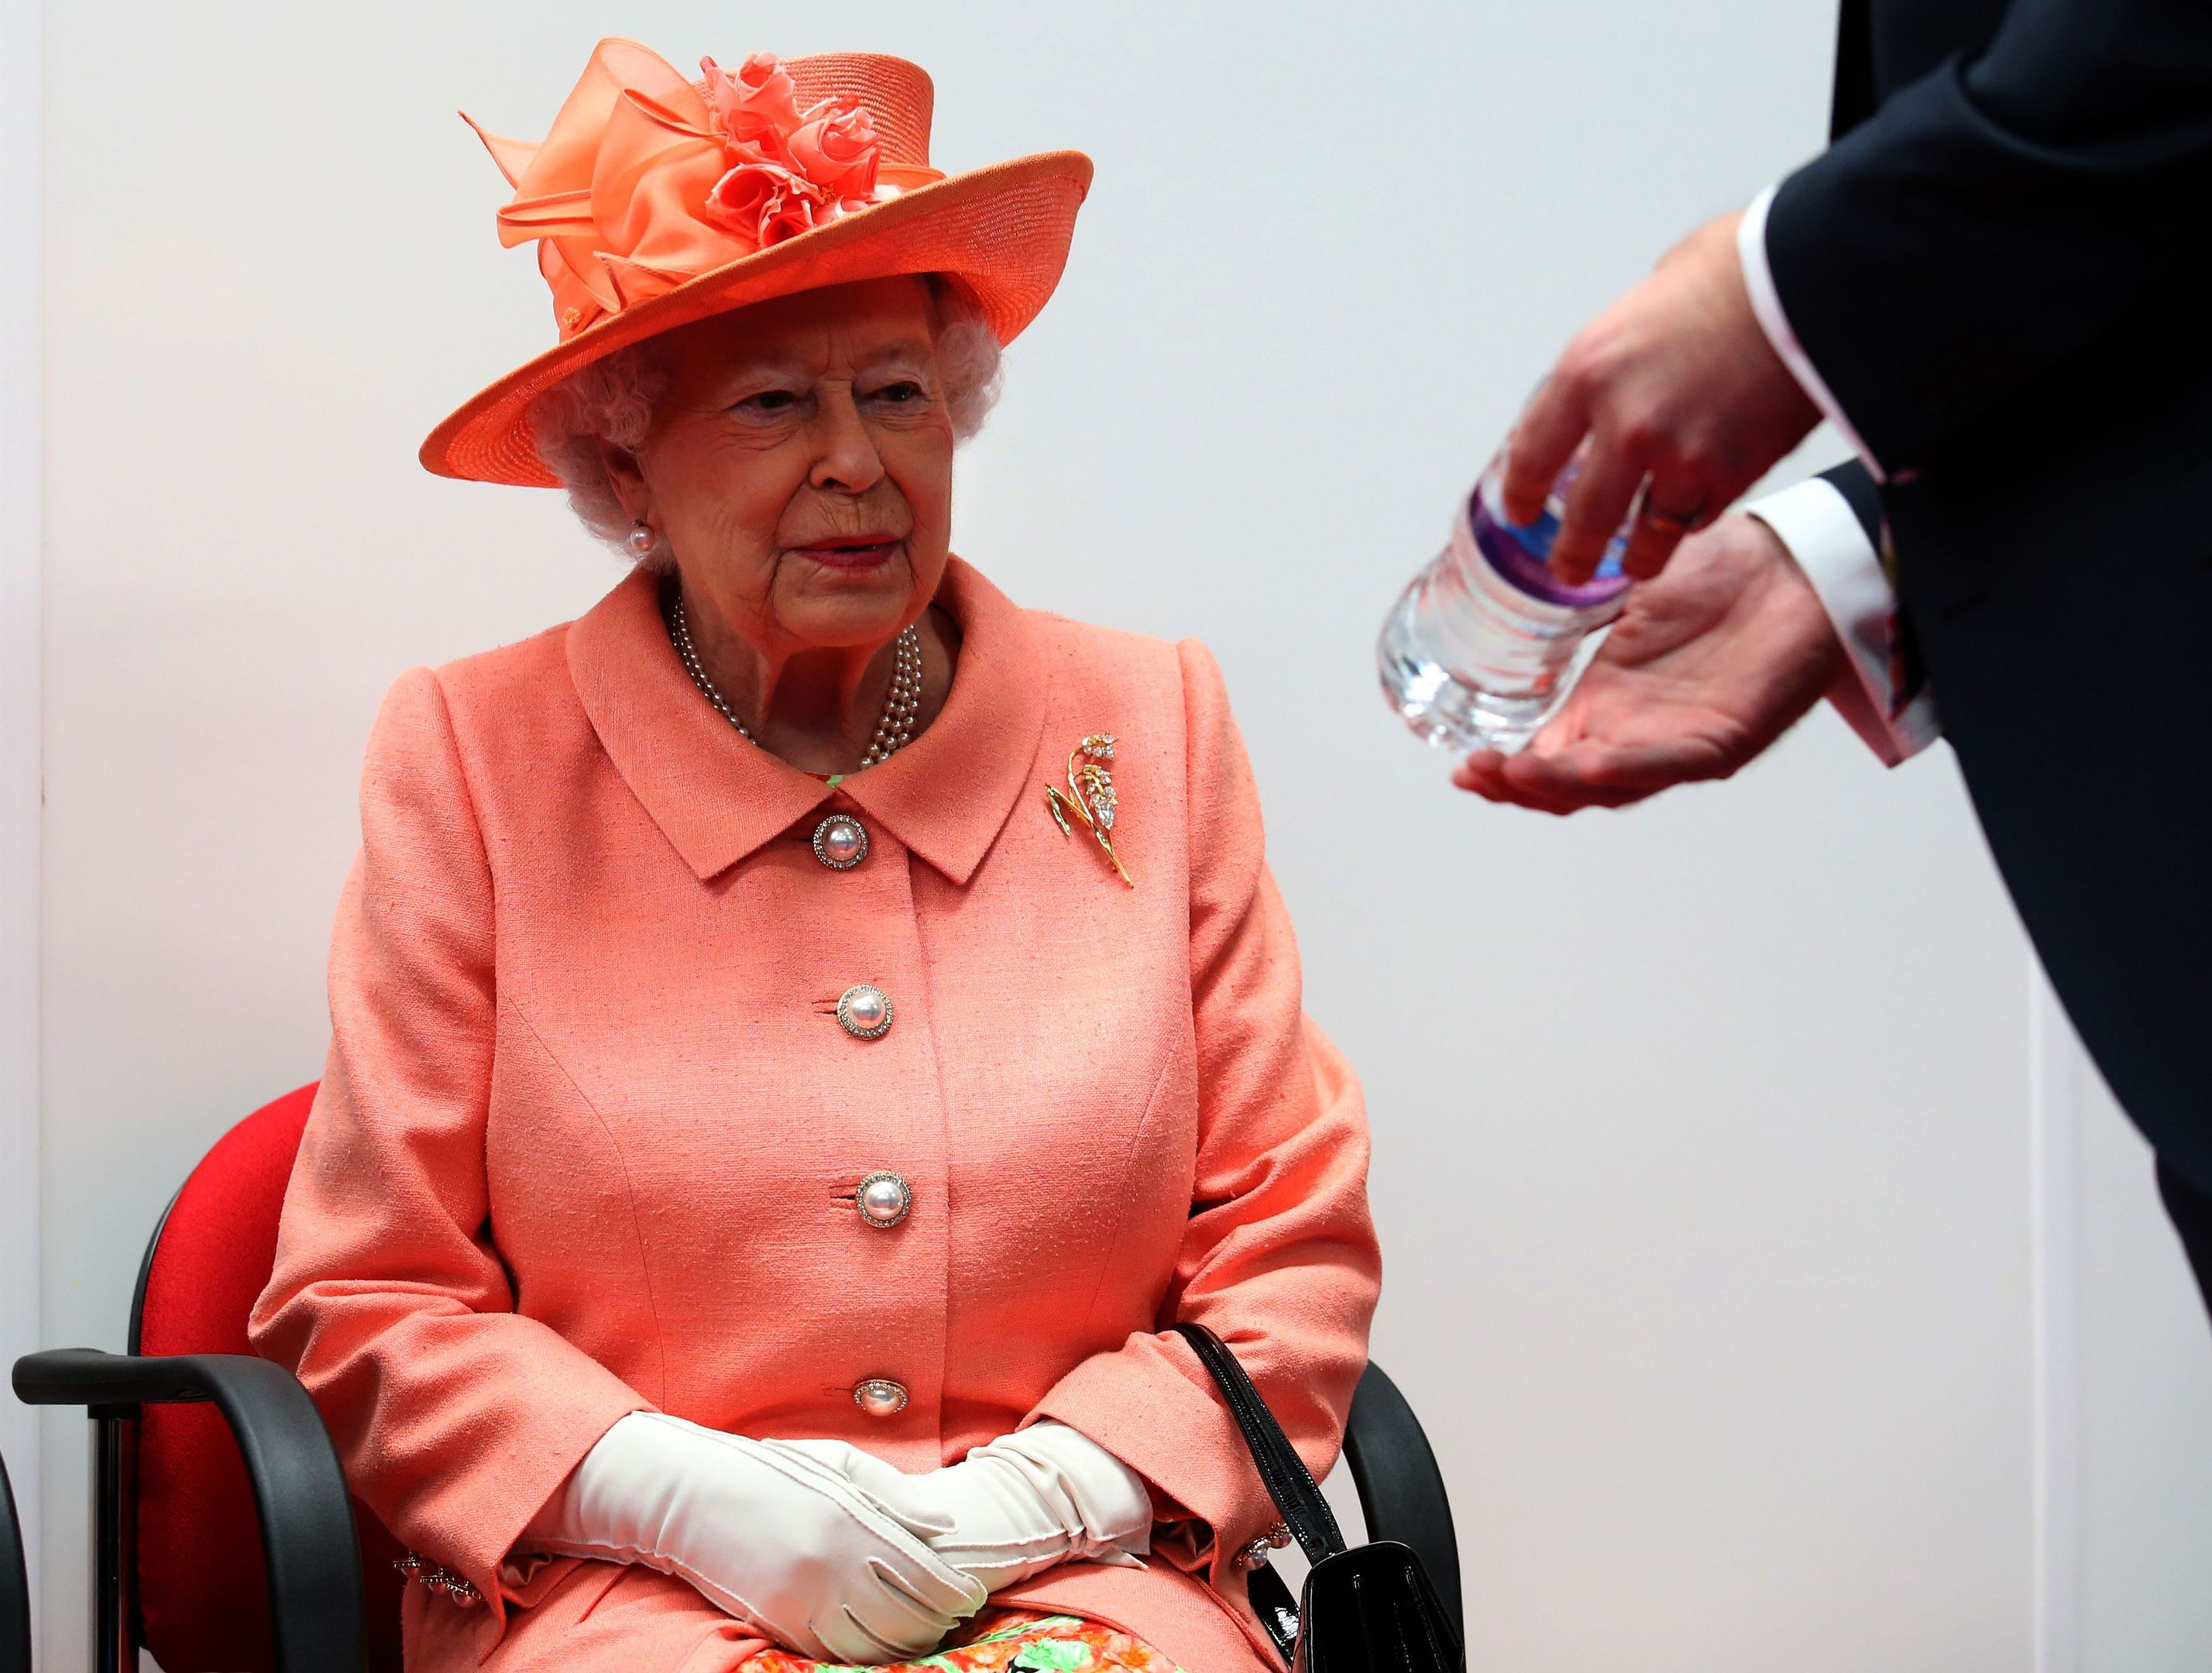 Queen Elizabeth II is shown a bottle of Highland Spring with her name on it after it was produced to commemorate her visit, during a visit to the new Highland Spring factory building in Blackford near Stirling. (Andrew Milligan/PA Wire)